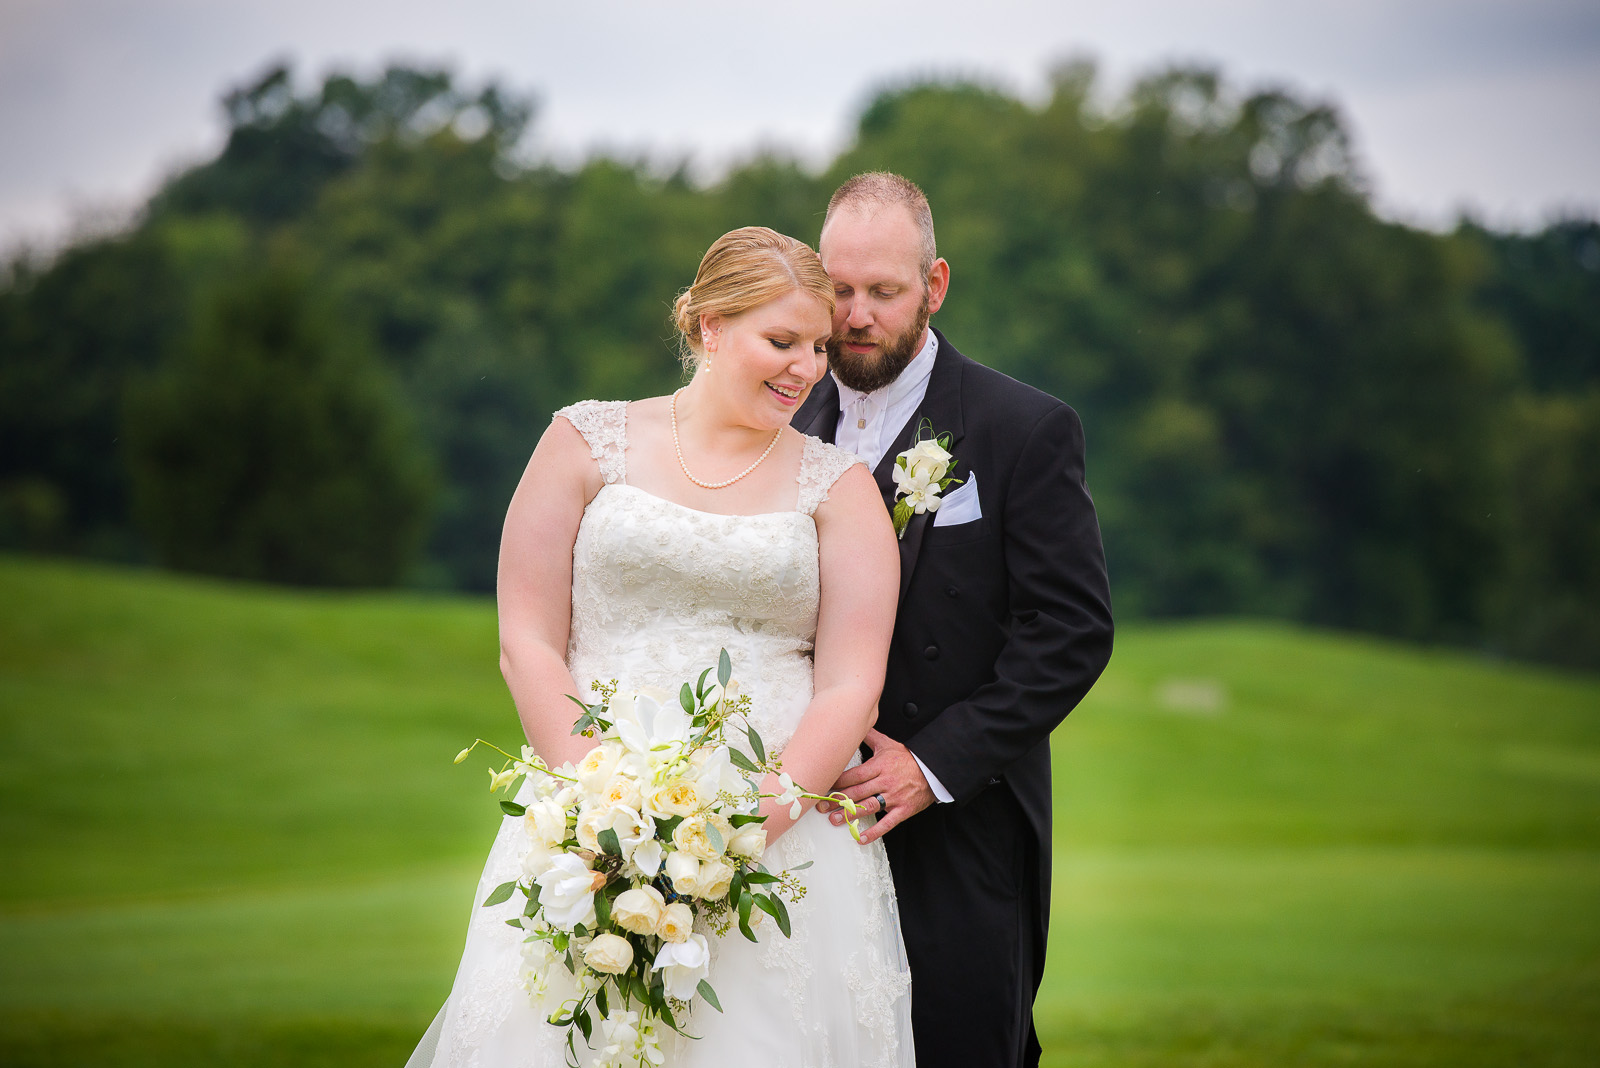 Eric_and_Christy_Photography_Blog_2016_Best_Wedding_Portraits-36